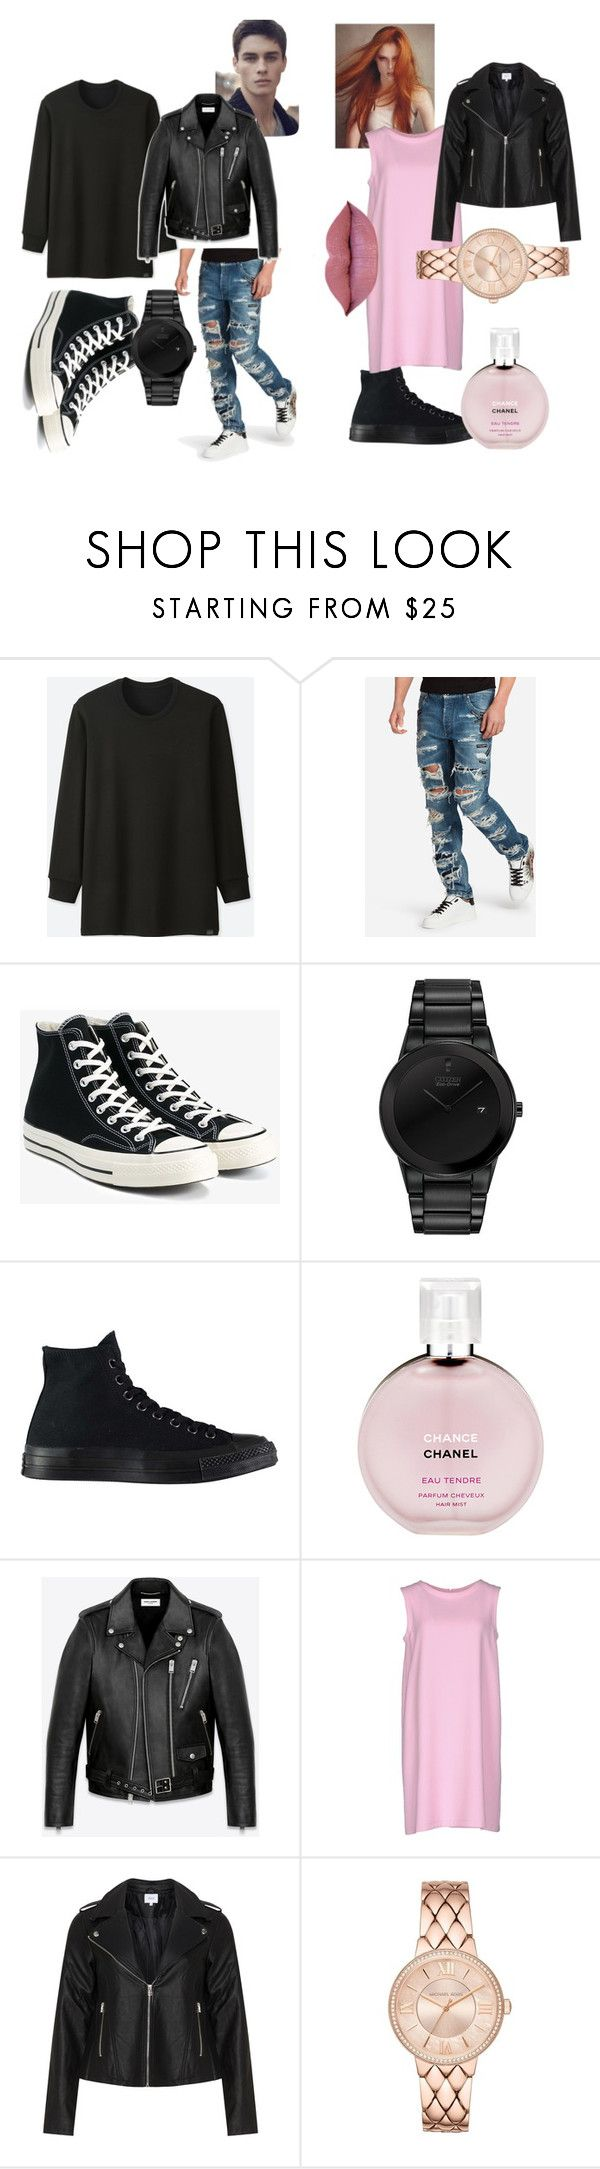 """""""power couple"""" by mdeztinay ❤ liked on Polyvore featuring Uniqlo, Dolce&Gabbana, Converse, Citizen, Chanel, Yves Saint Laurent, Gianluca Capannolo and Zizzi"""